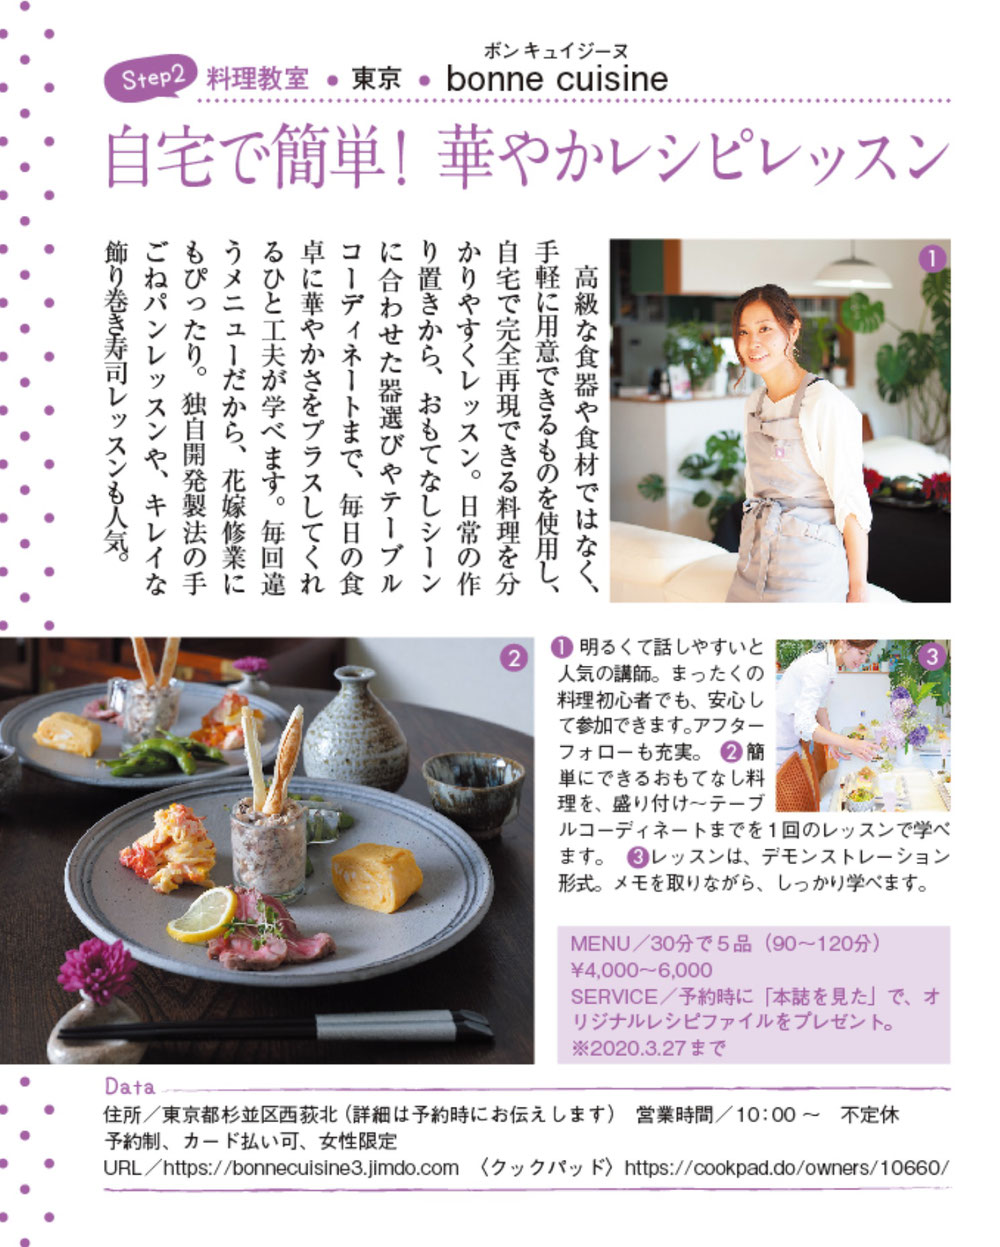 CLASSY5月号 bonnecuisine